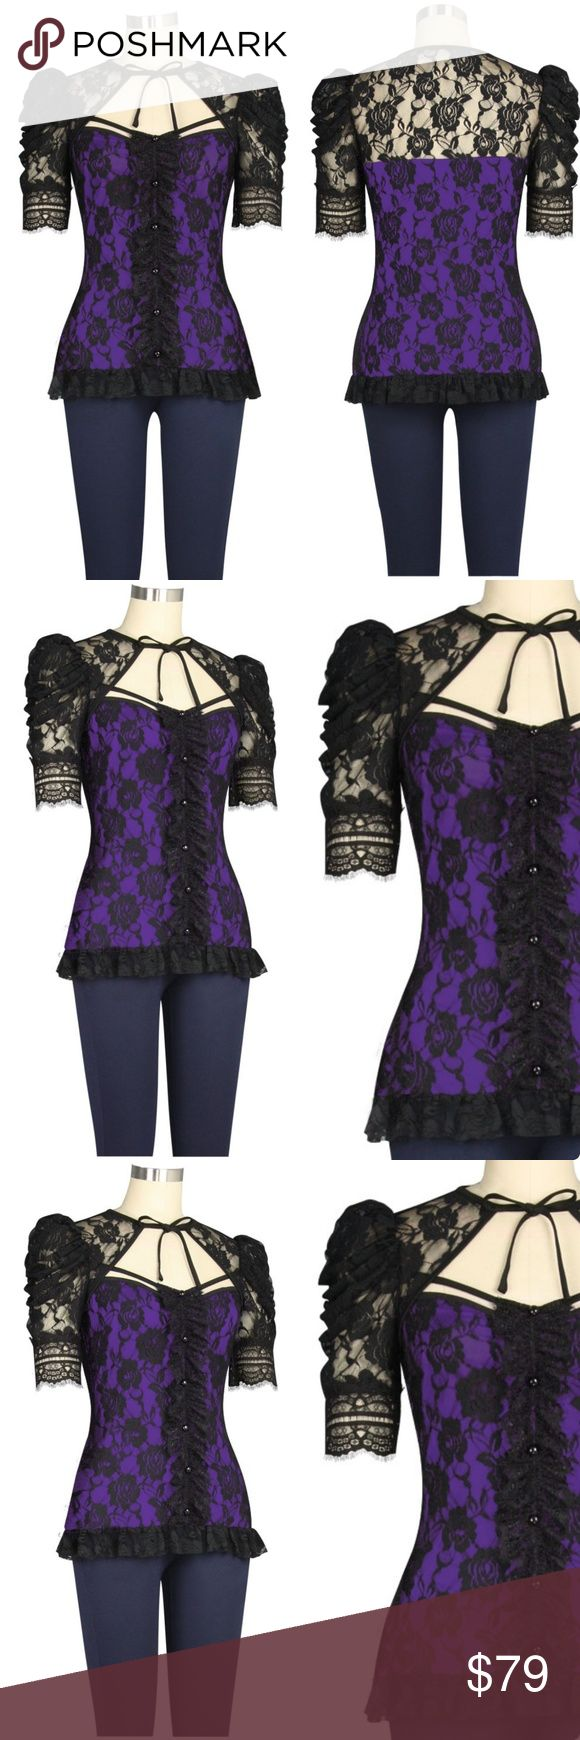 """Lace Steampunk Gothic Clothing Top Shirt Purple New Lace Steampunk Clothing Top   Now Accepting Pre-Orders on this Petticoat! ▶▶▶Delivery 5-12 Days Delivery◀◀◀  This is a private brand also sold at Hot Topic. Not Hot Topic brand itself.  This shirt features a lace outer layer with a jersey lining underneath. Decorative buttons and lace down the front.  Length: 25"""" Material: 93% Polyester 7% Spandex Hot Topic Tops"""